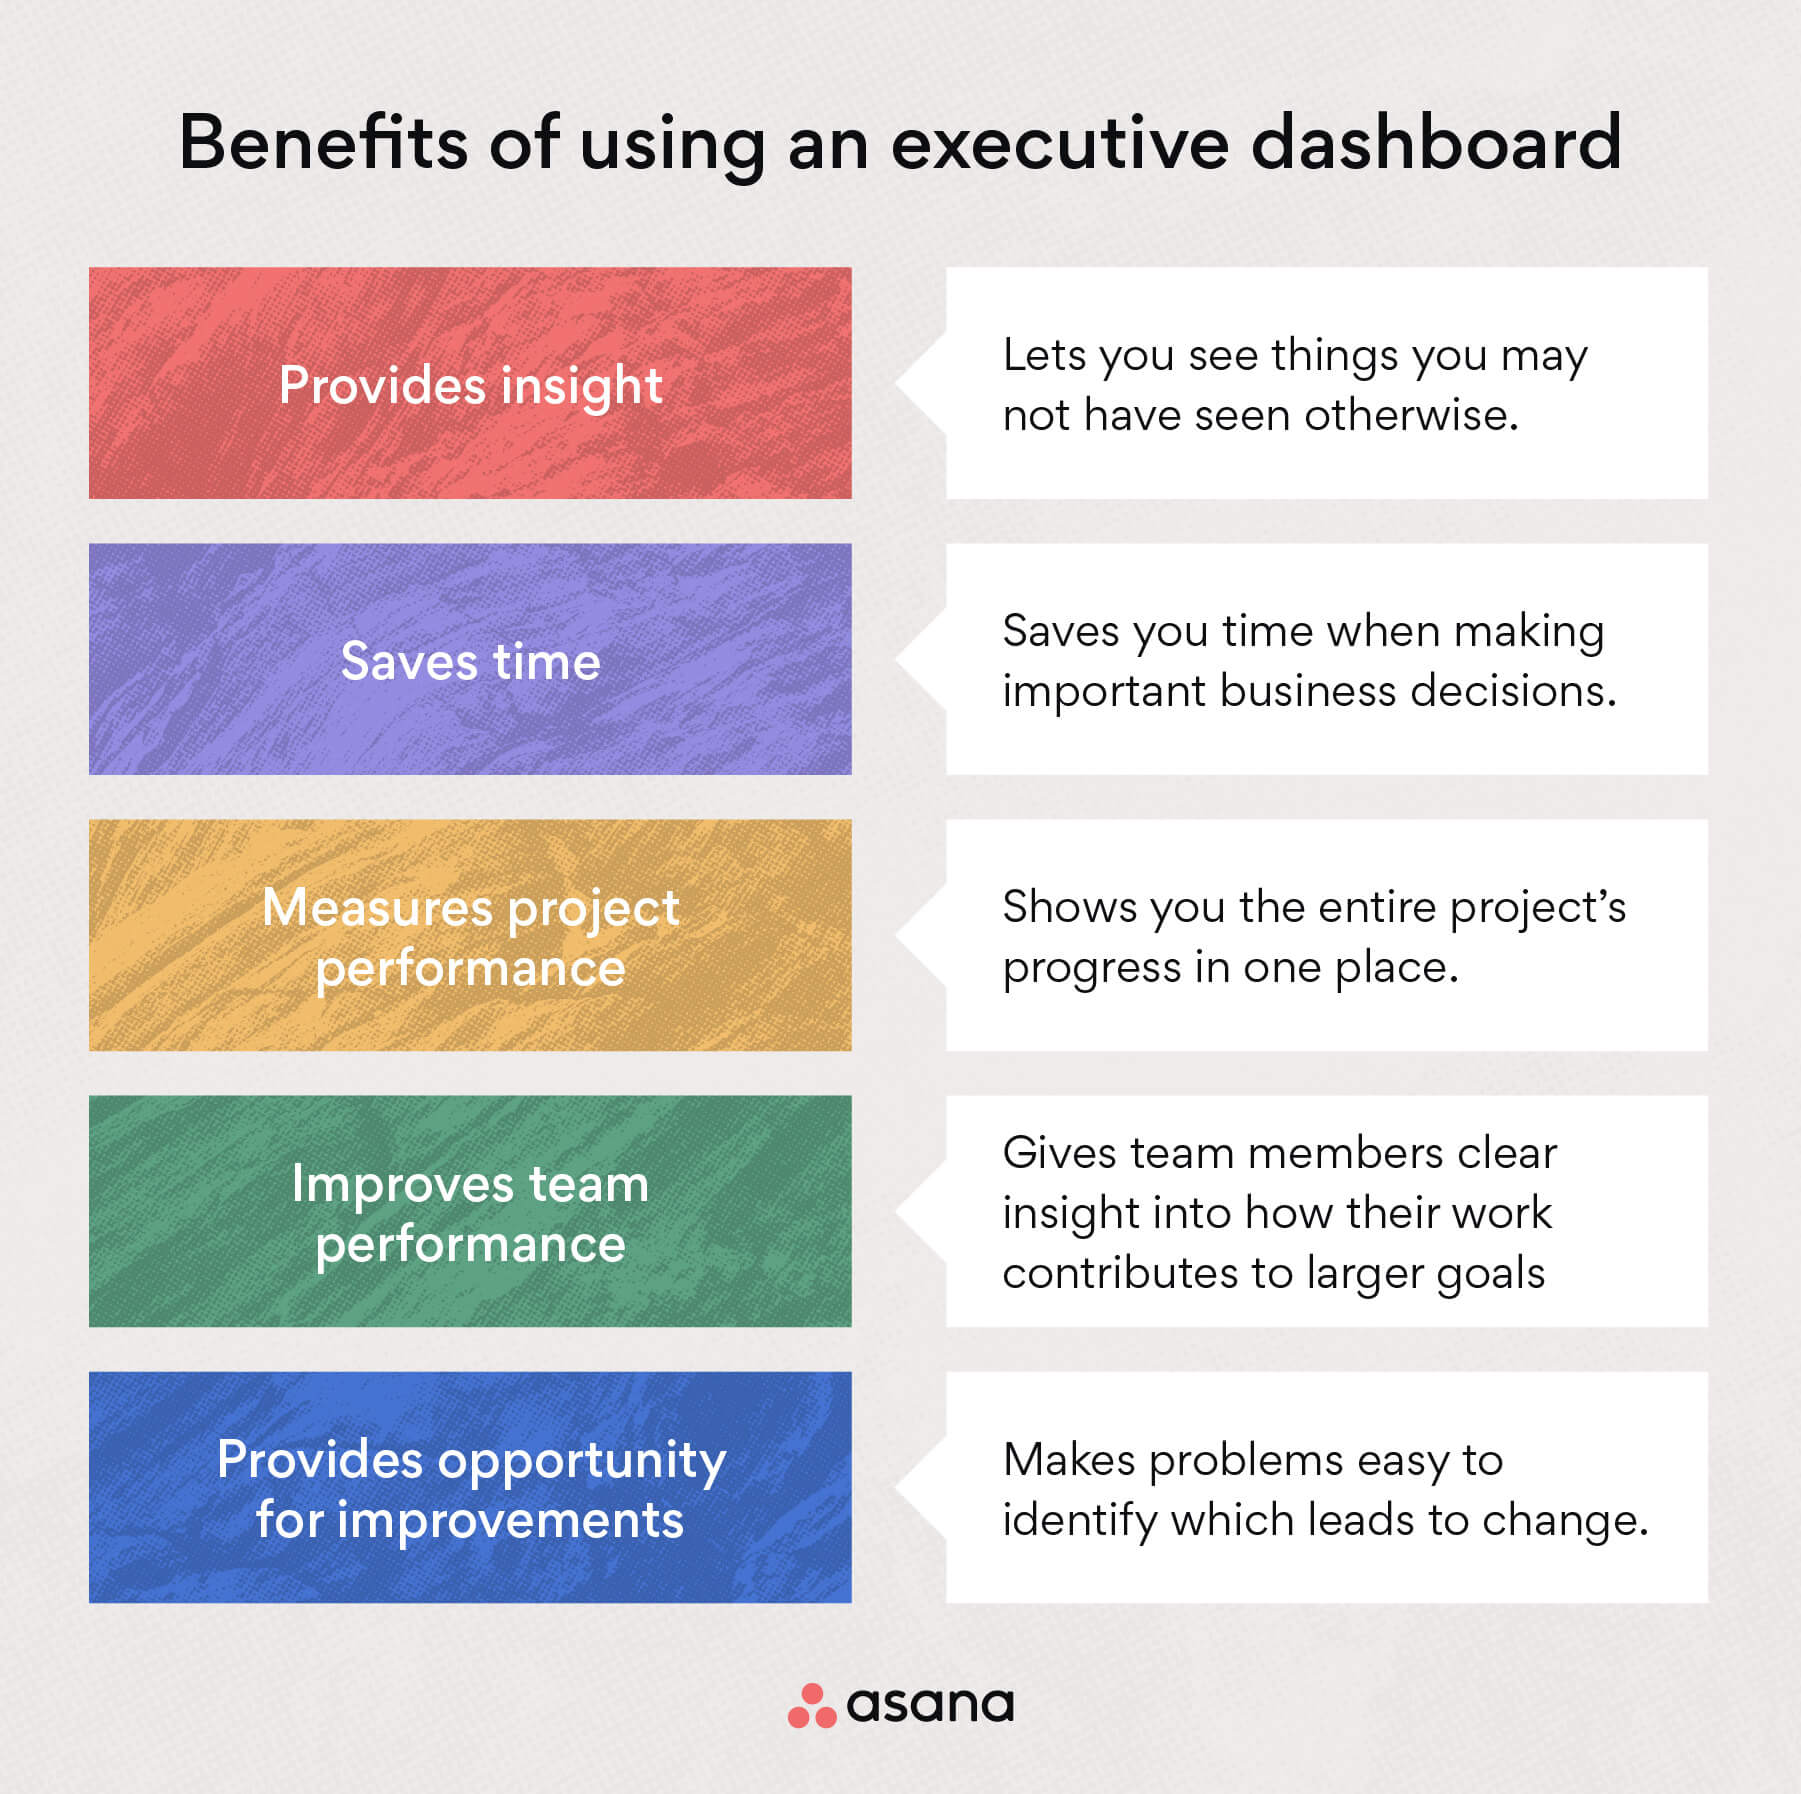 benefits of using an executive dashboard